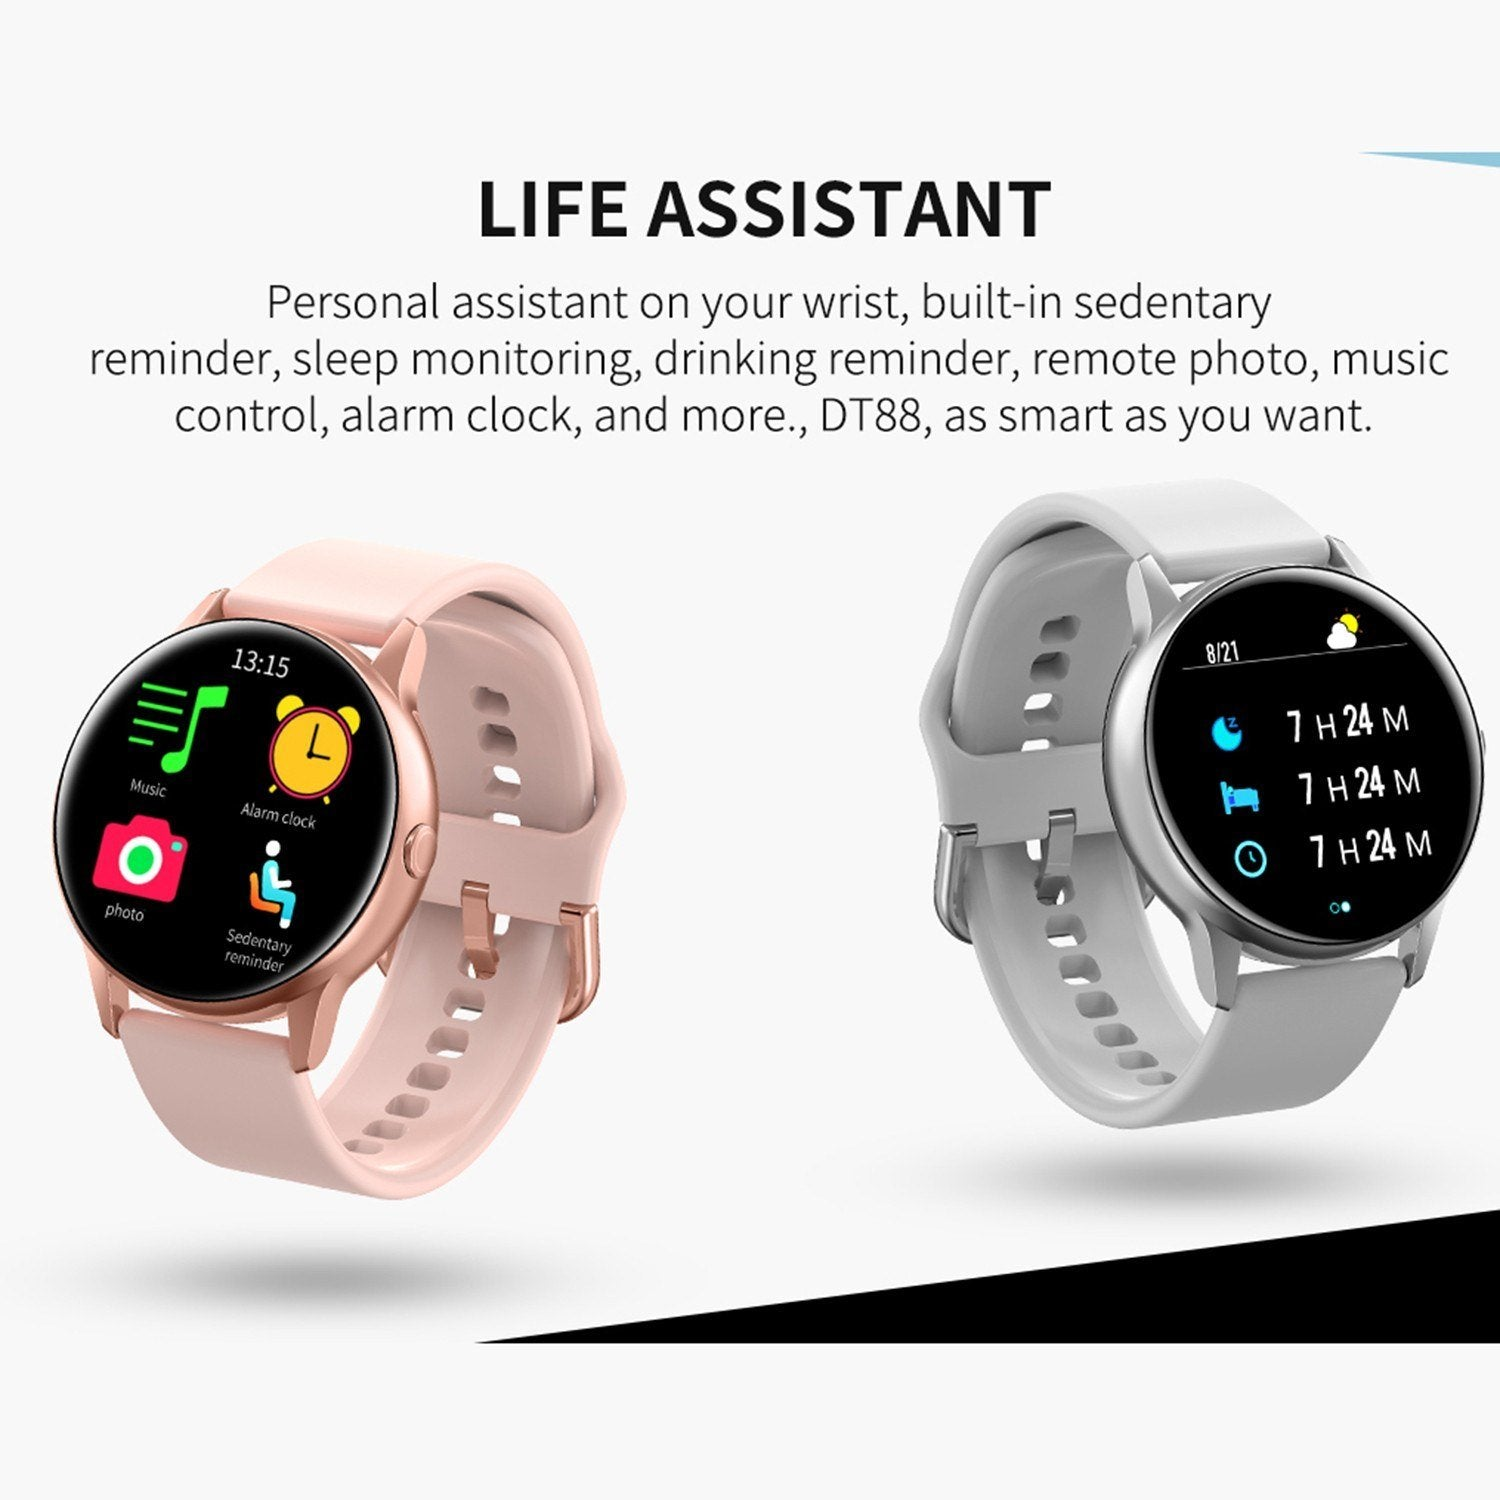 DT88 Smart Watch Bracelet Heart Rate Fitness Blood Pressure Blood Oxygen Monitoring Silicone Strap Watch Full Touch Screen Waterproof Multiple Sports Mode Smart Watch